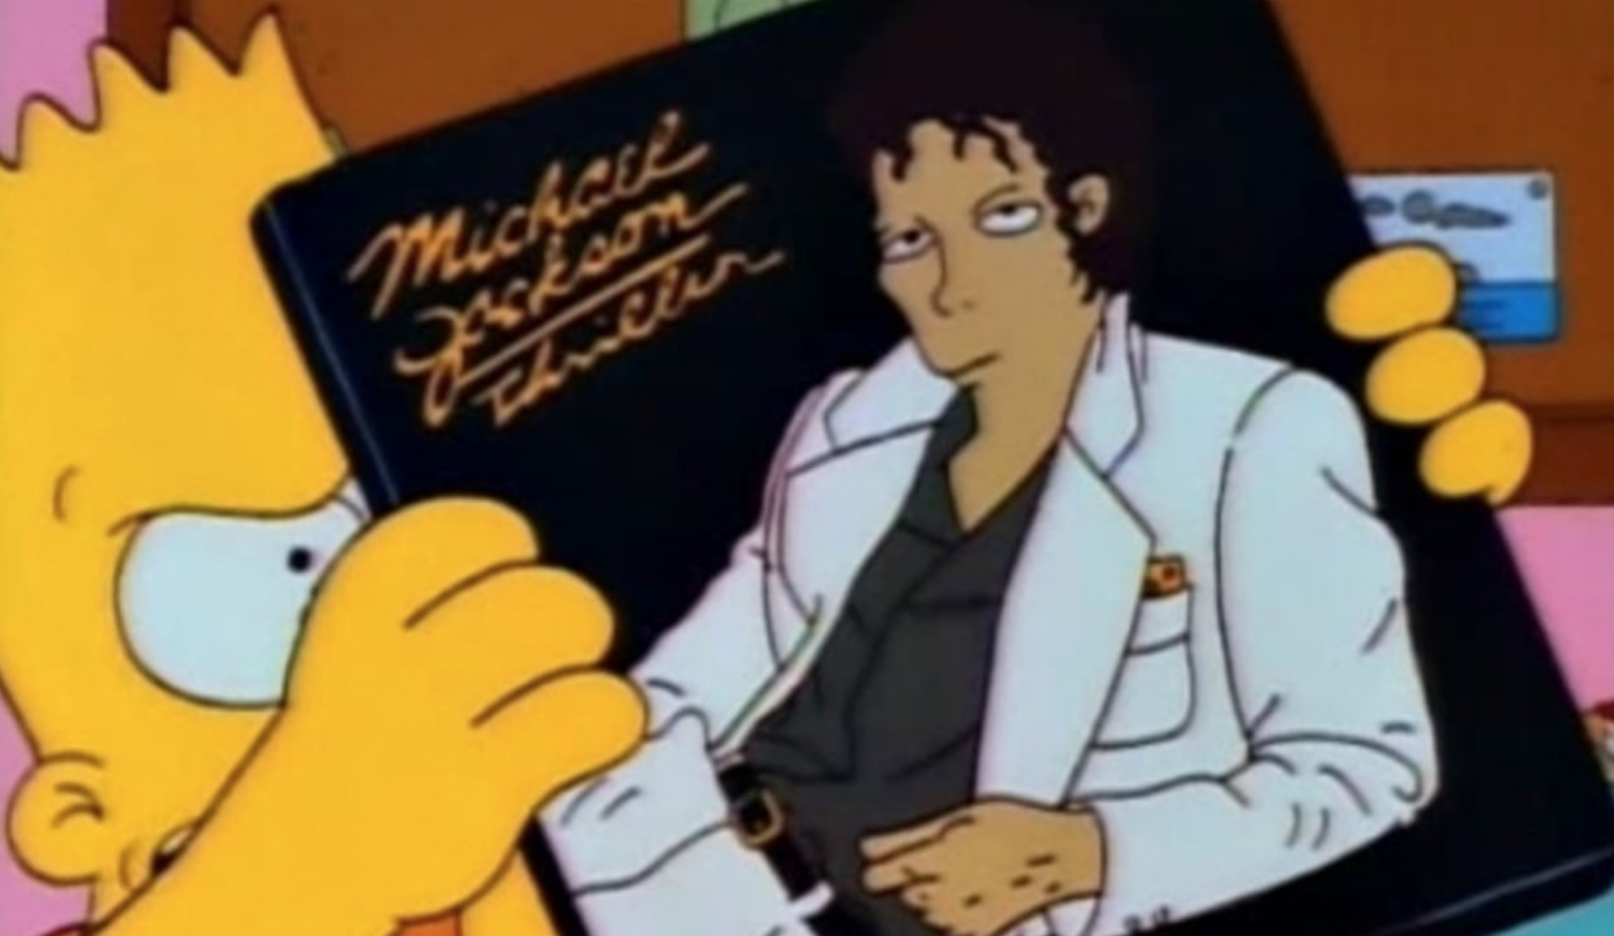 The Simpsons Pulls Michael Jackson Episode From Circulation